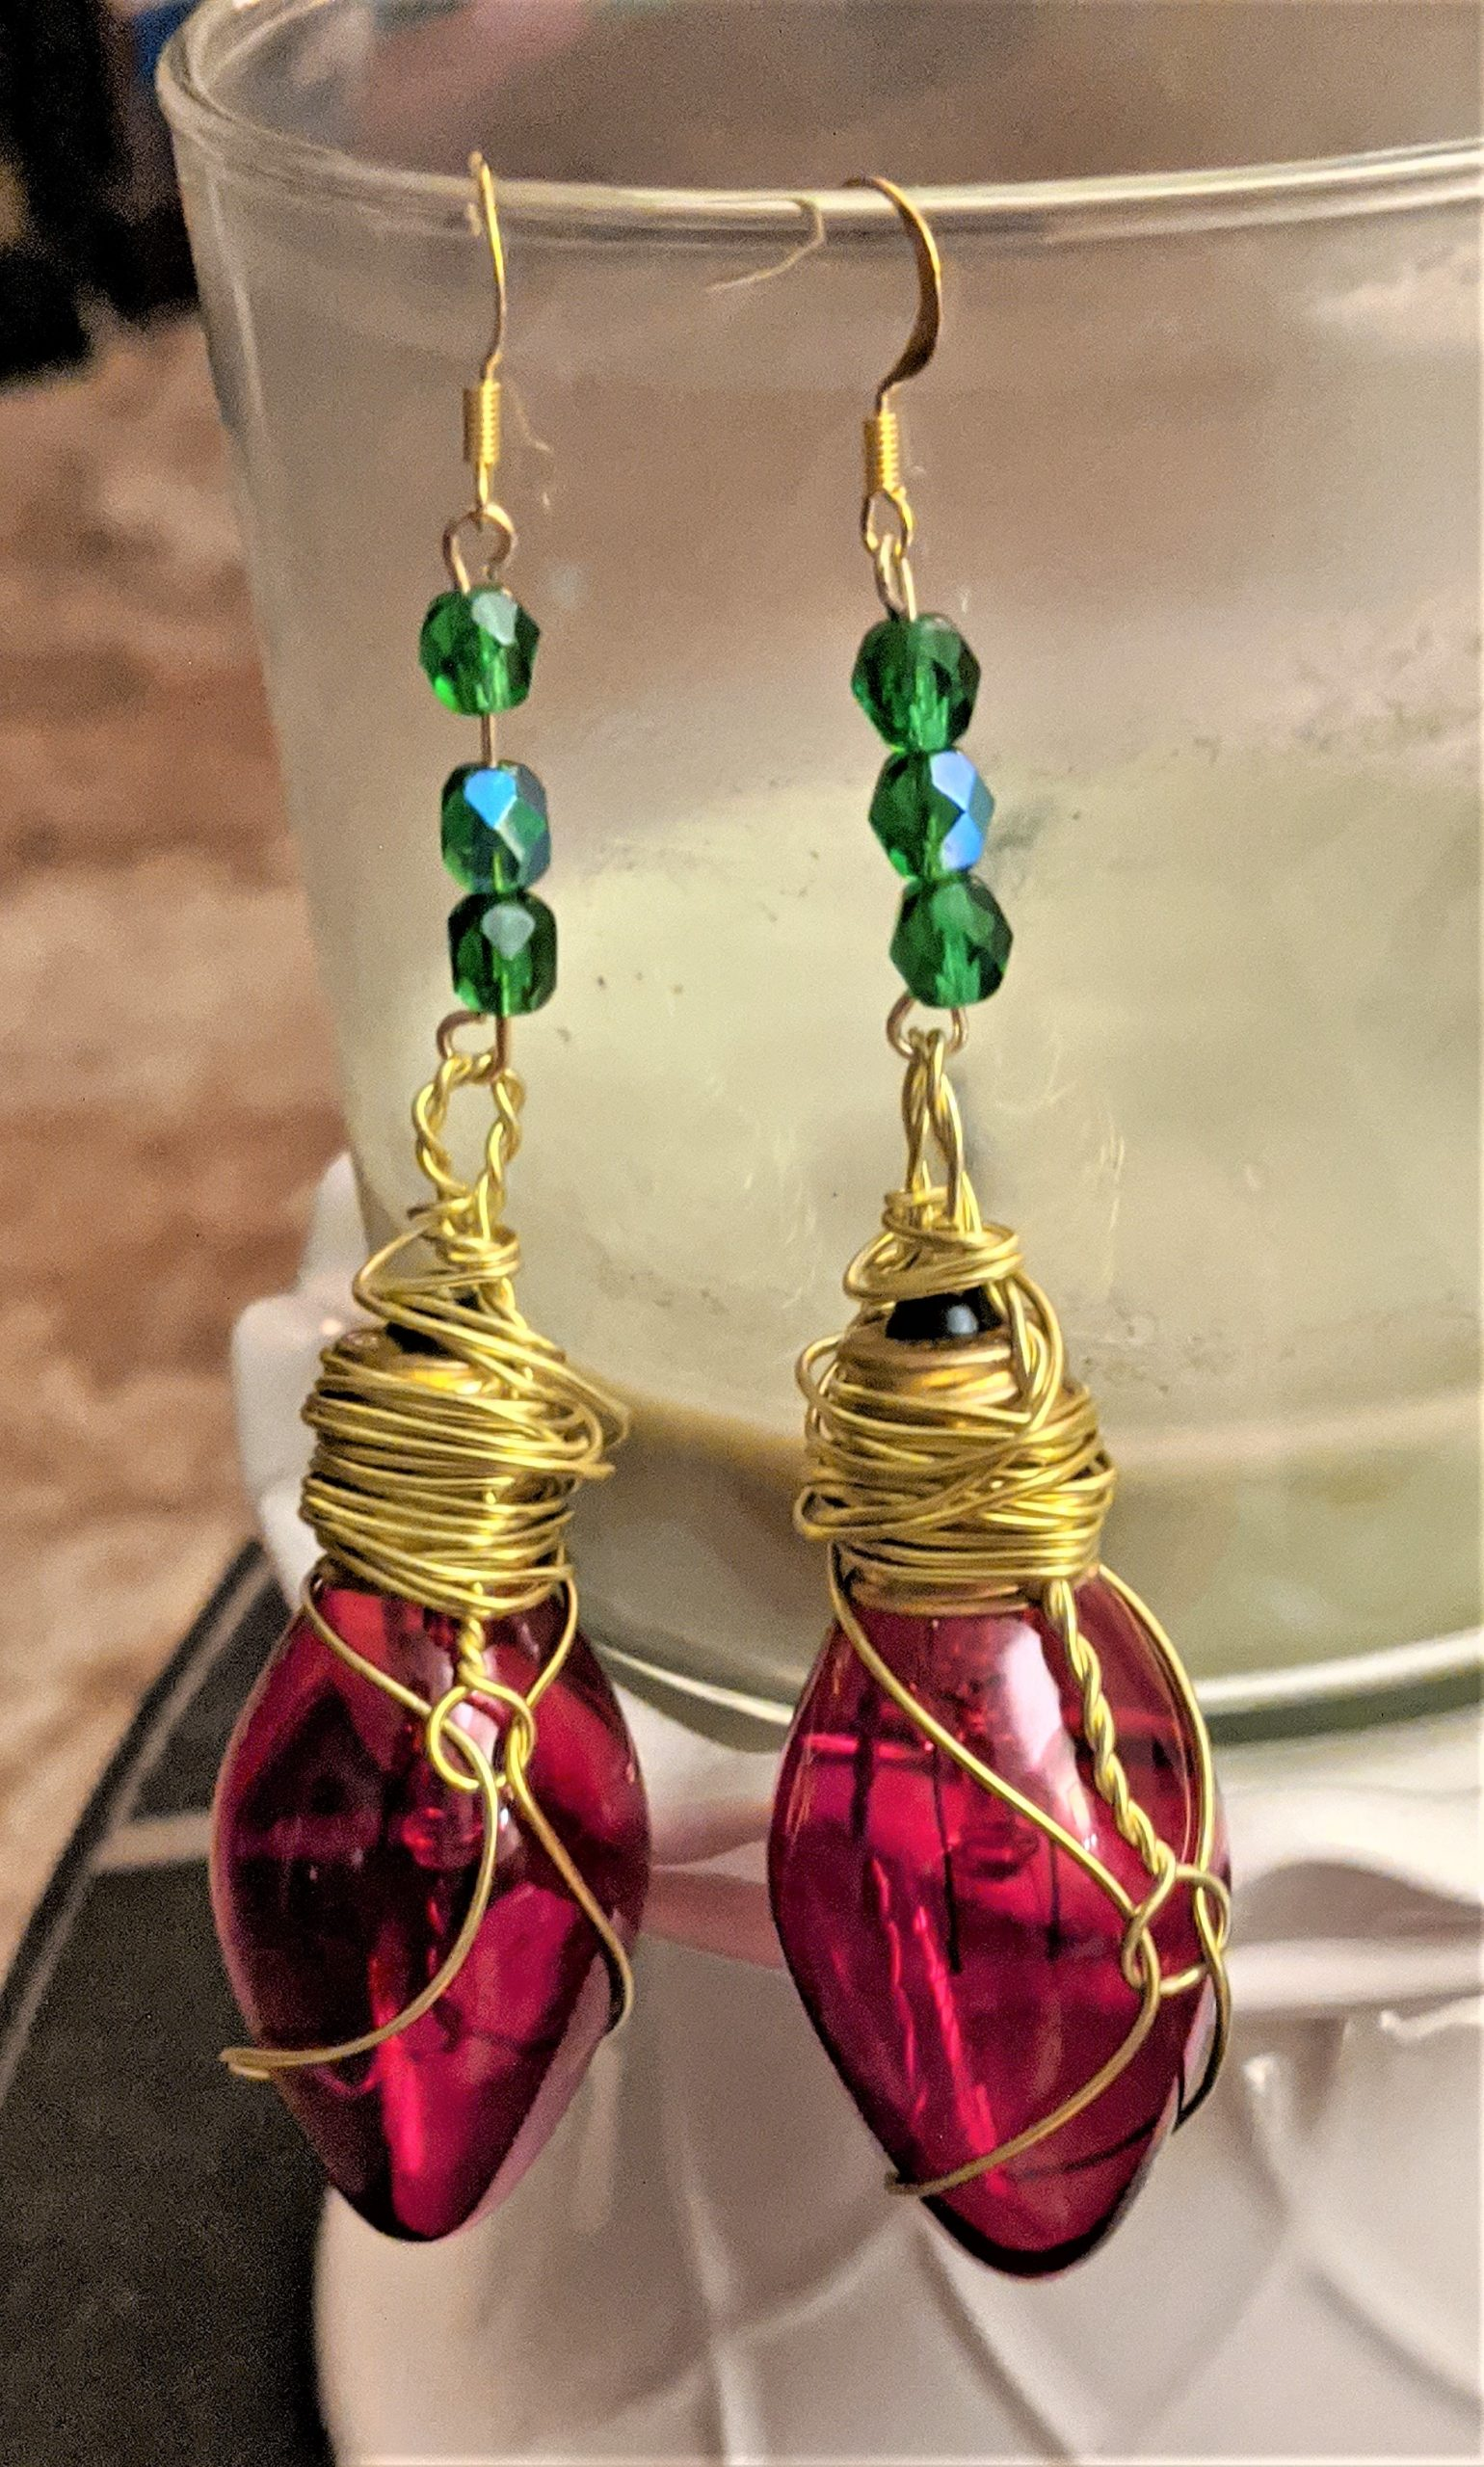 How to Make Stunning and Festive Christmas Earrings